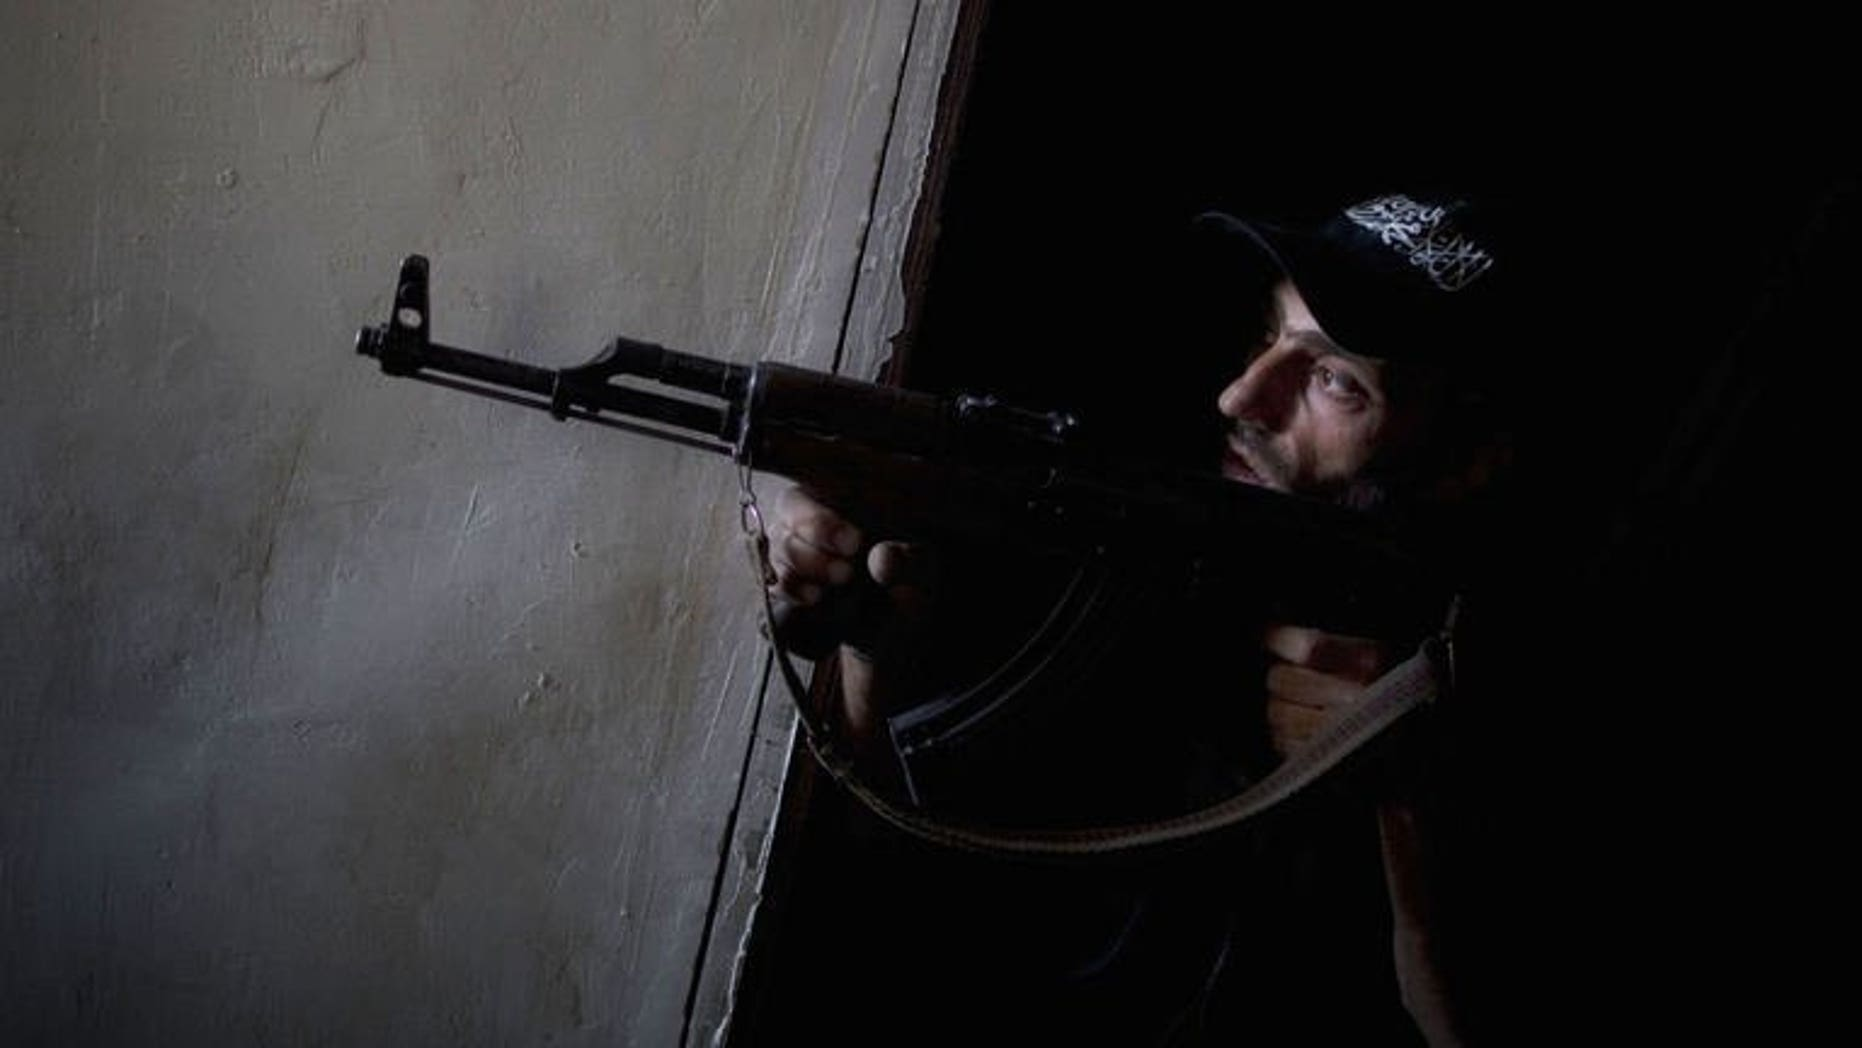 A Syrian rebel fighter points his gun towards pro-regime forces during clashes in the Salaheddine district of Aleppo, on July 9, 2013. Syria's rebels have seized the strategic town of Khan al-Assal, a regime bastion situated in the northern province of Aleppo, according to the Syrian Observatory for Human Rights.